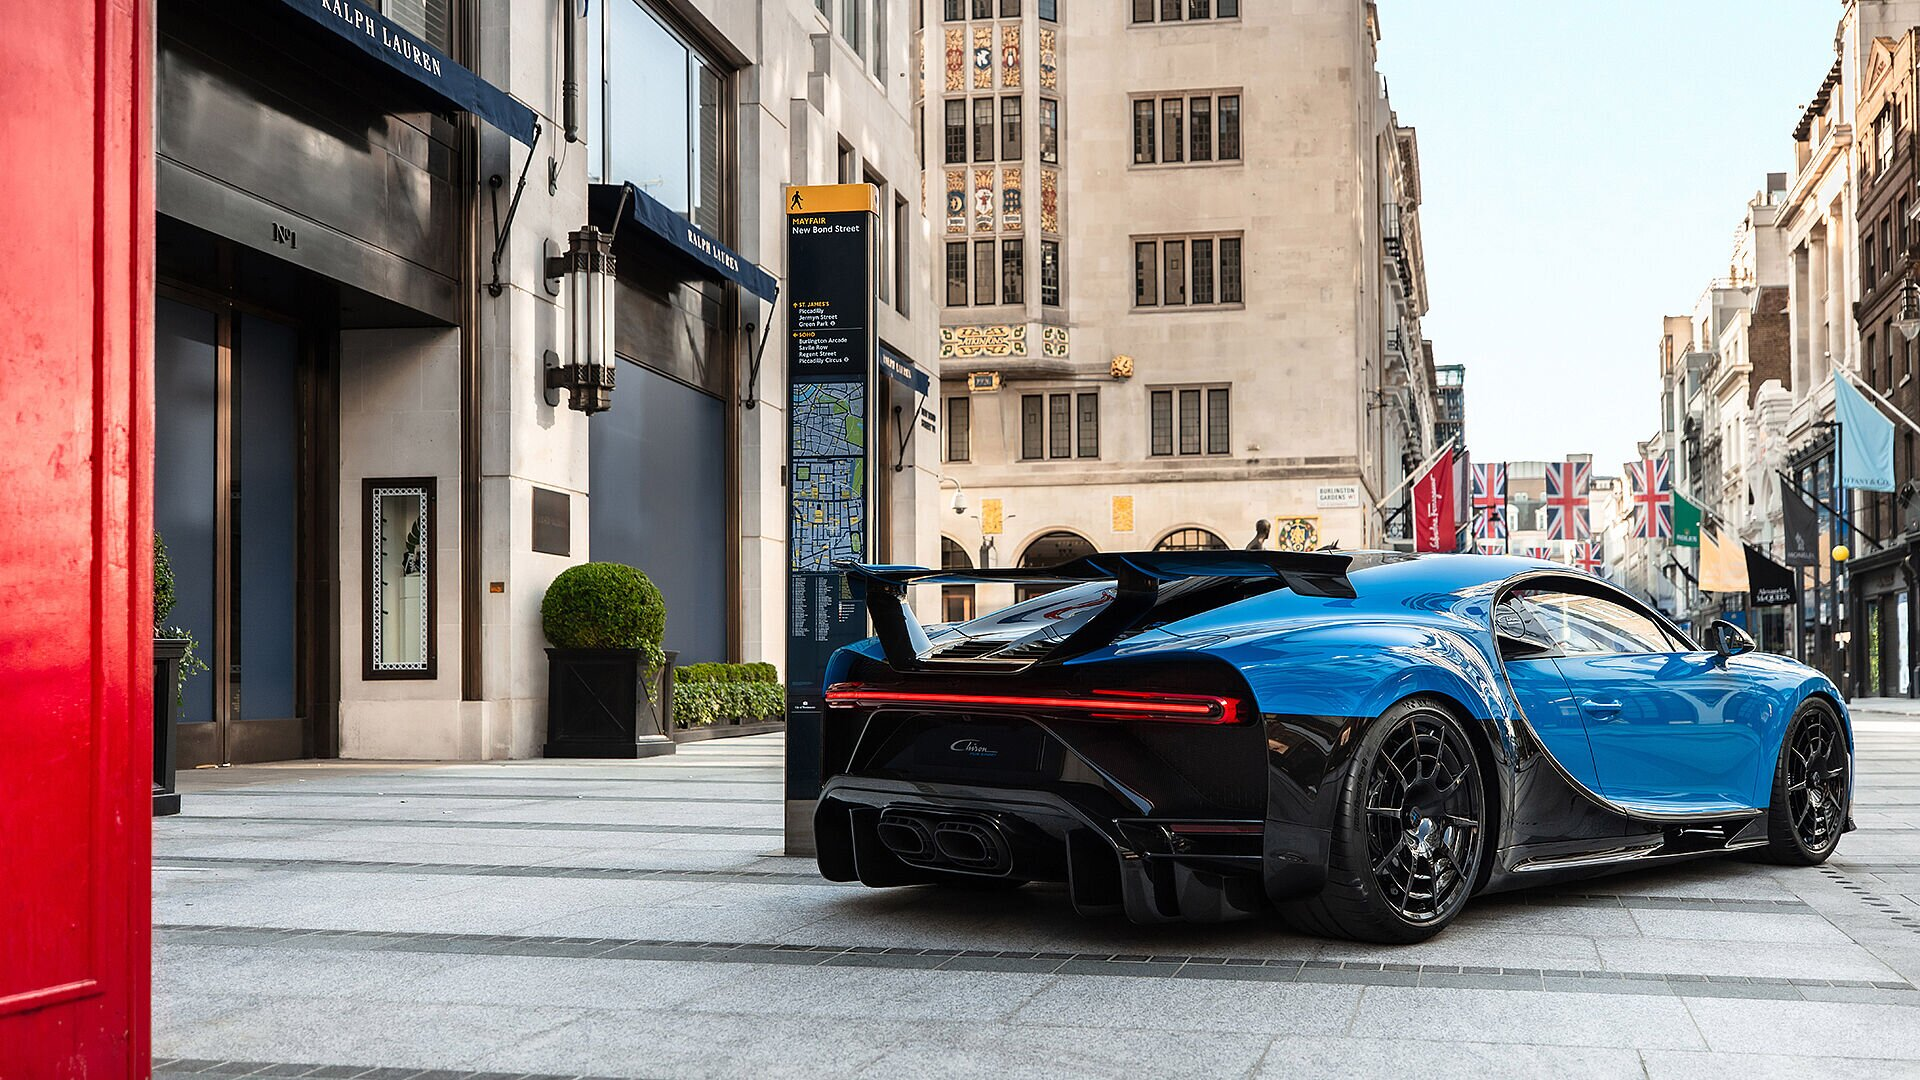 Bugatti Chiron Pur Sport continues its tour through Europe - Image 2